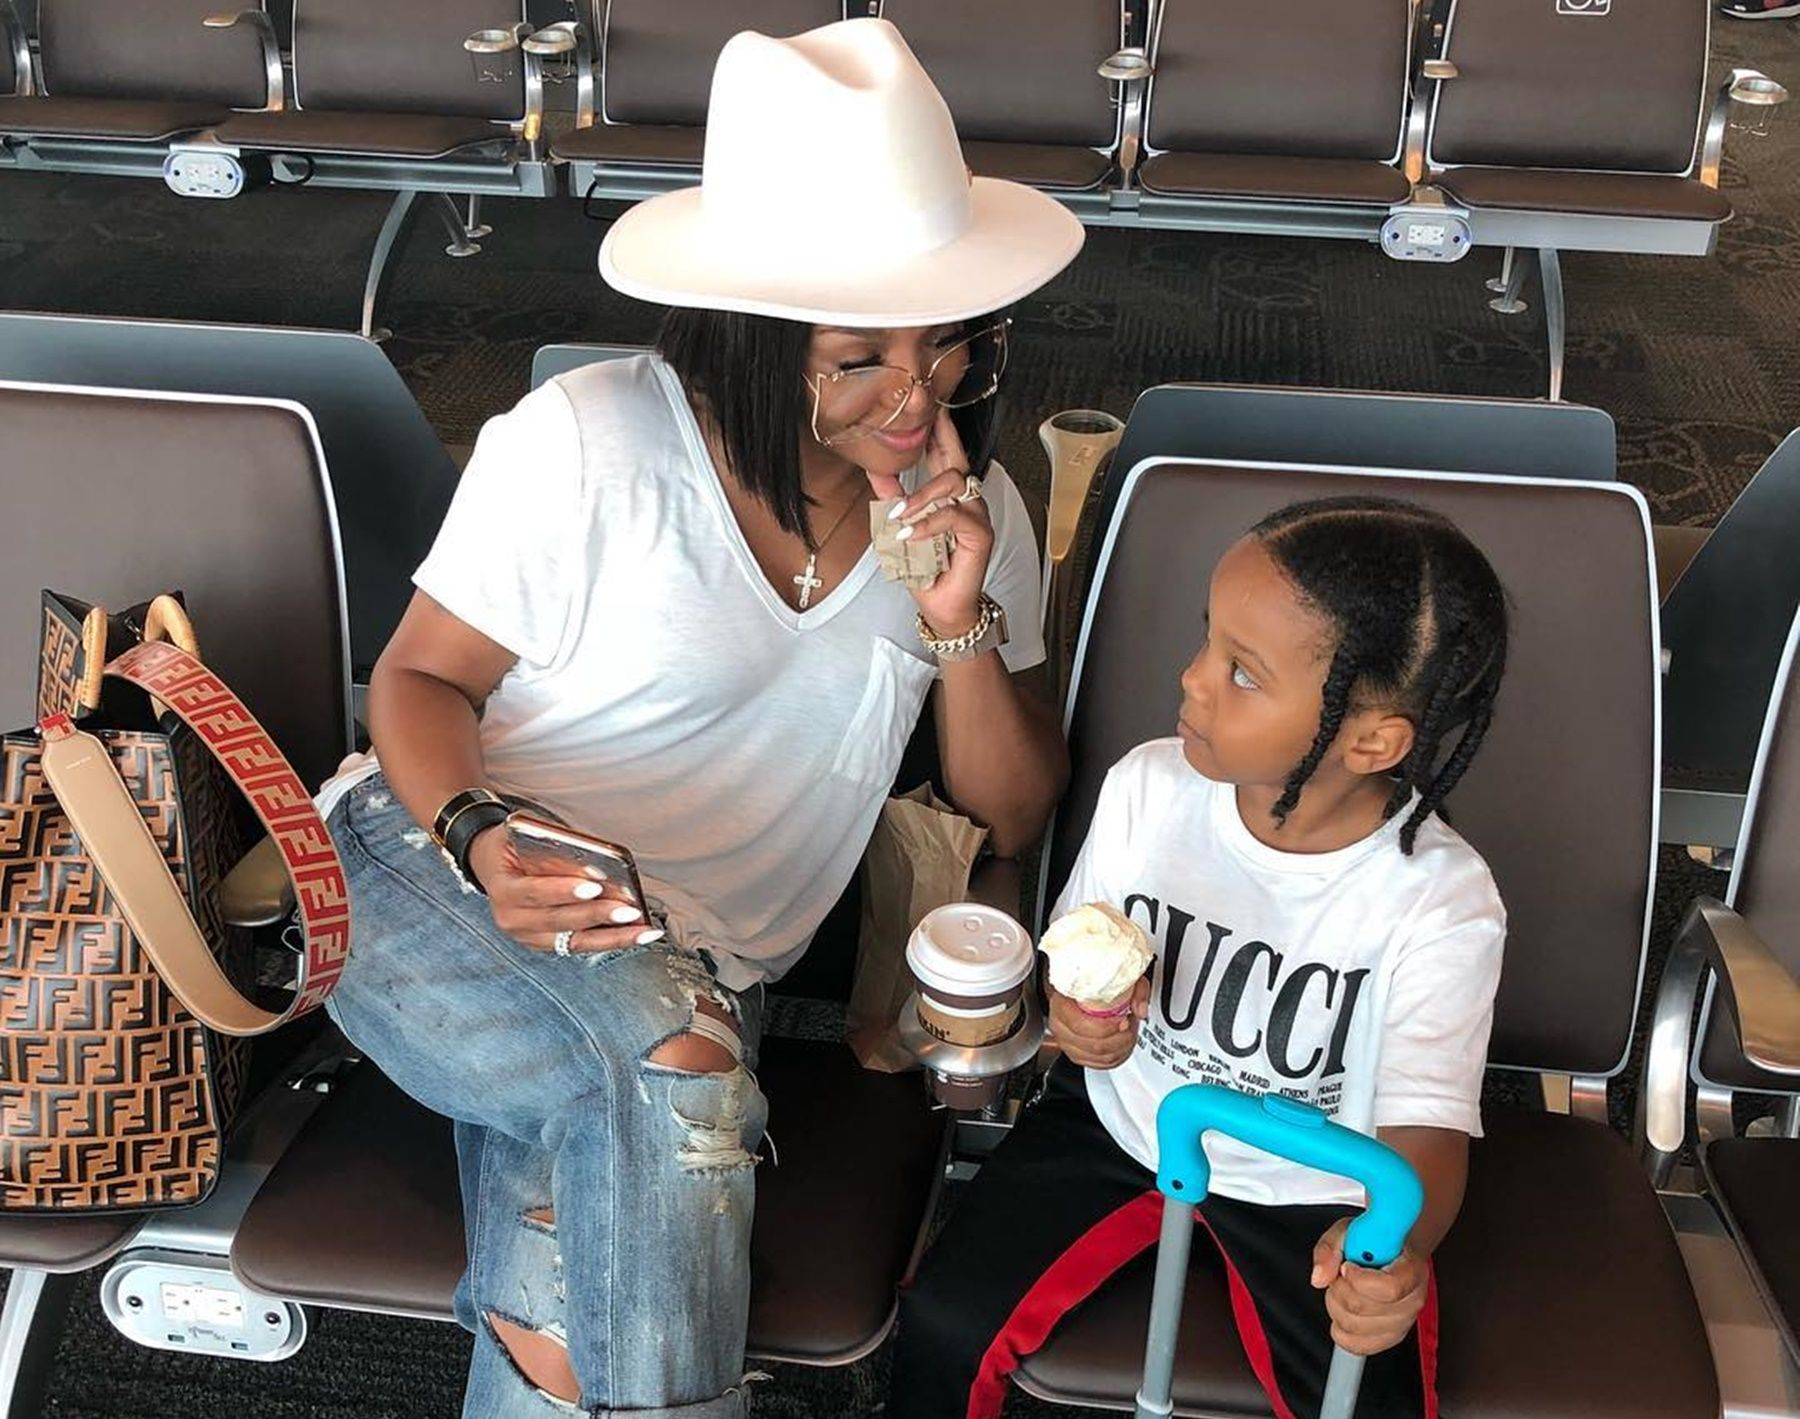 Rasheeda Frost Gets A Thumbs-Up From Karter For Her Latest Fashion Choices In New Photo — Some Fans Think Kirk's Wife Is Pregnant